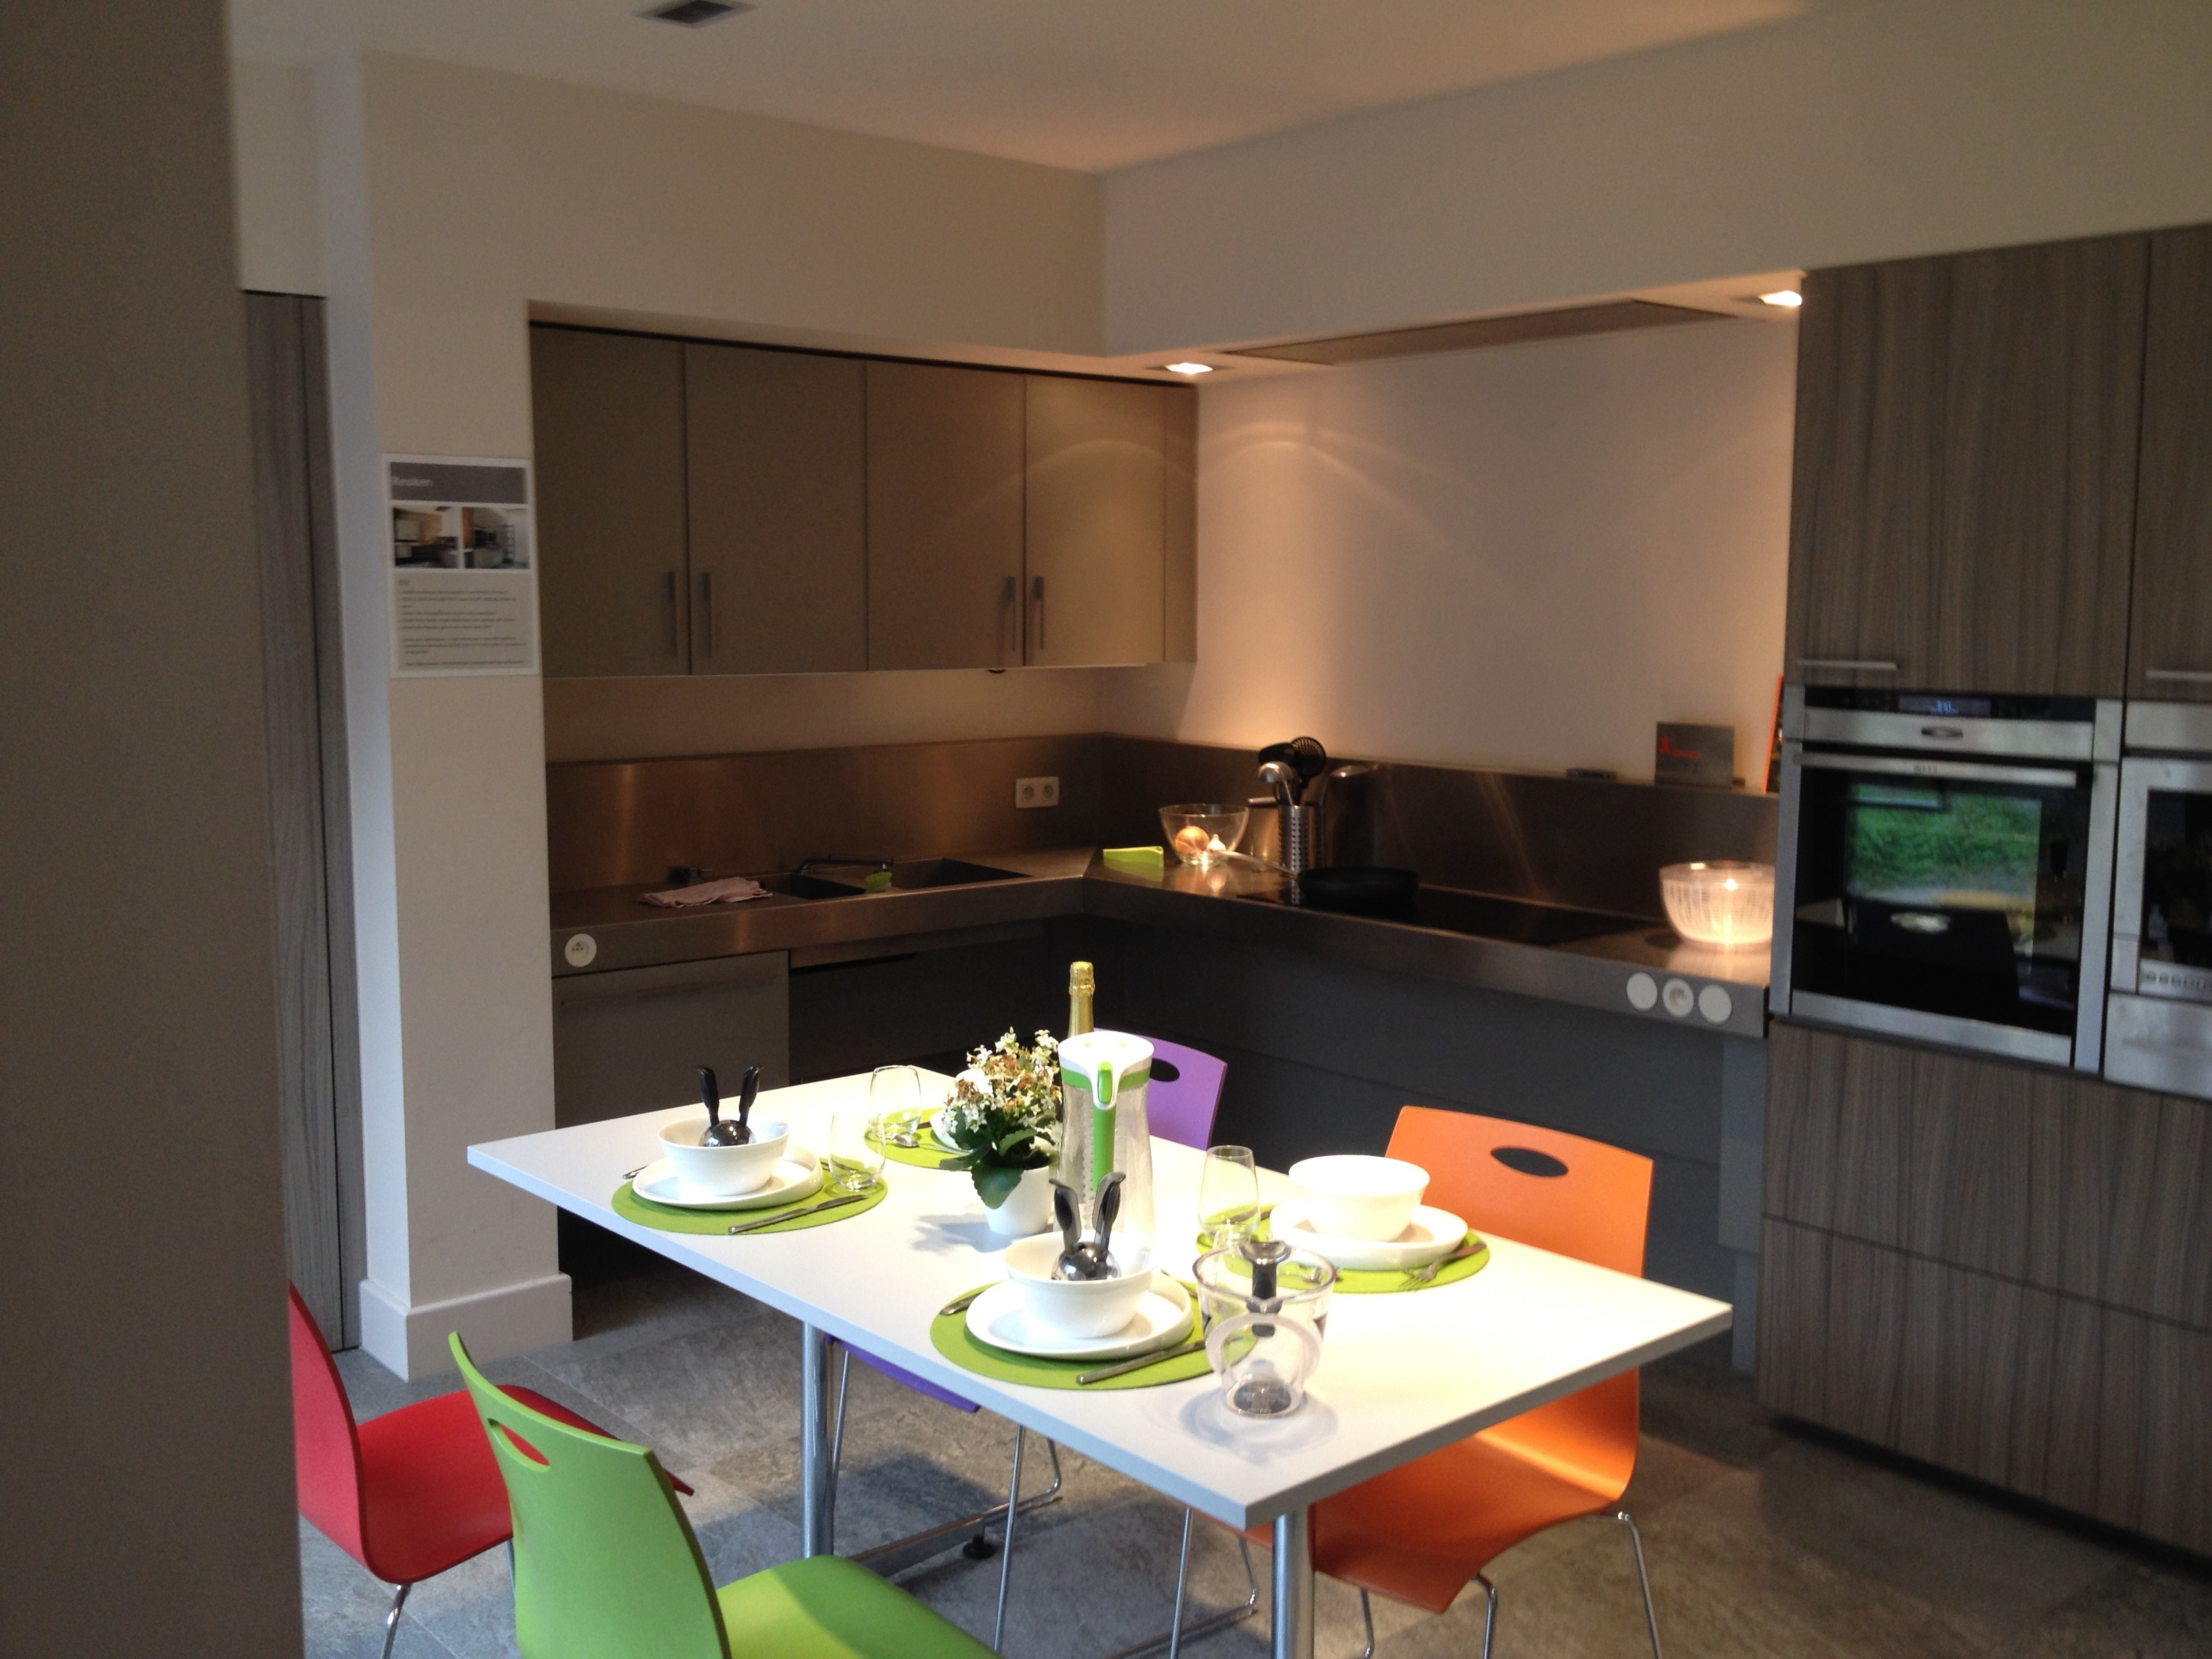 09. Accessible and adjustable kitchen. Ground floor